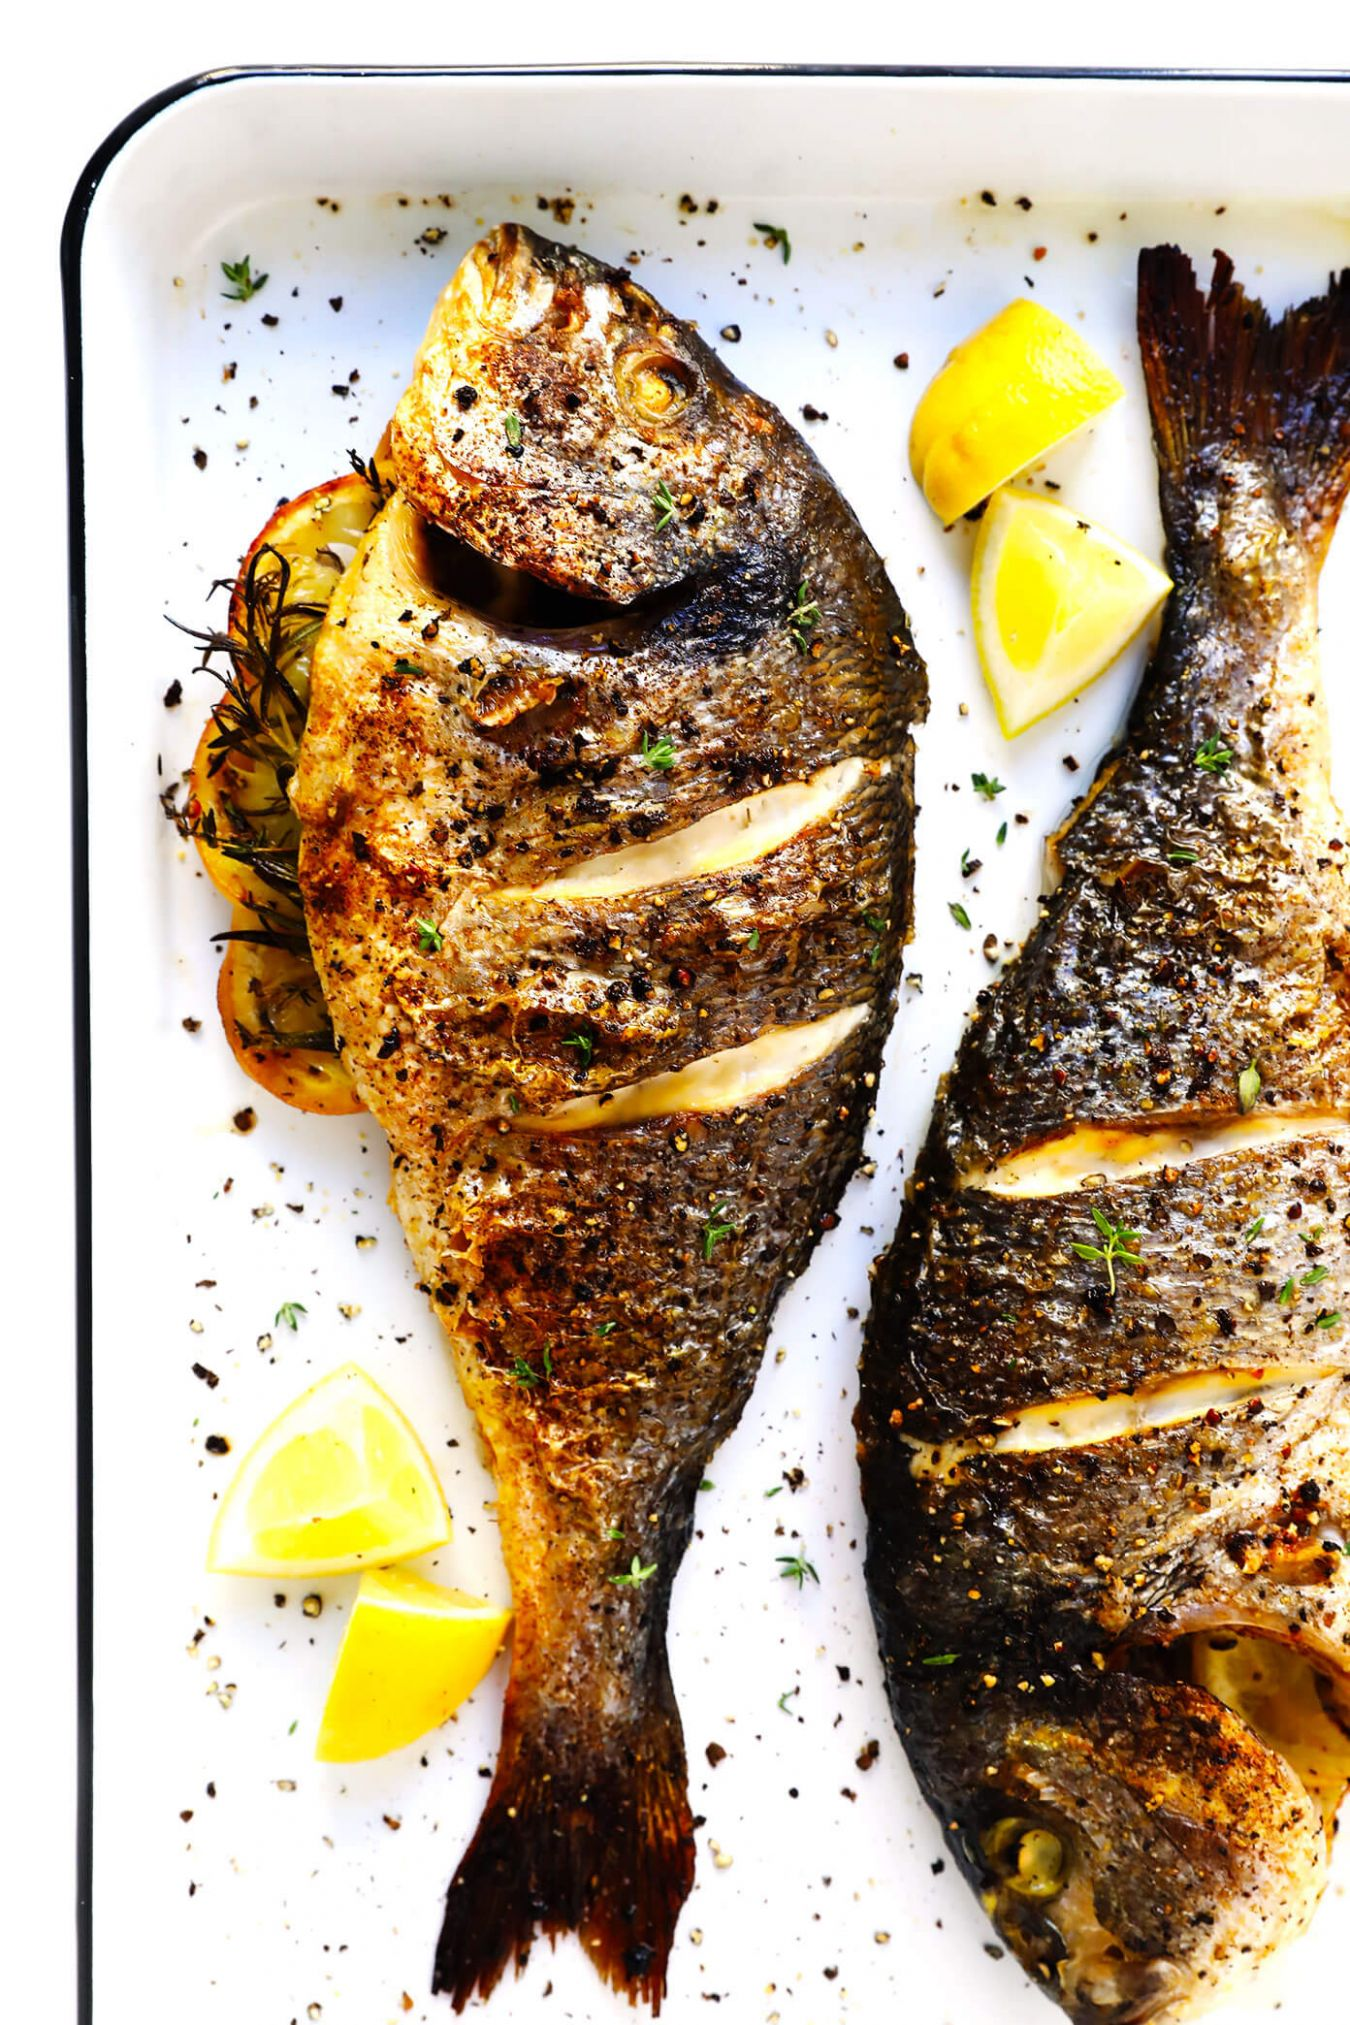 How To Cook A Whole Fish - Recipes Cooking Tilapia Fish